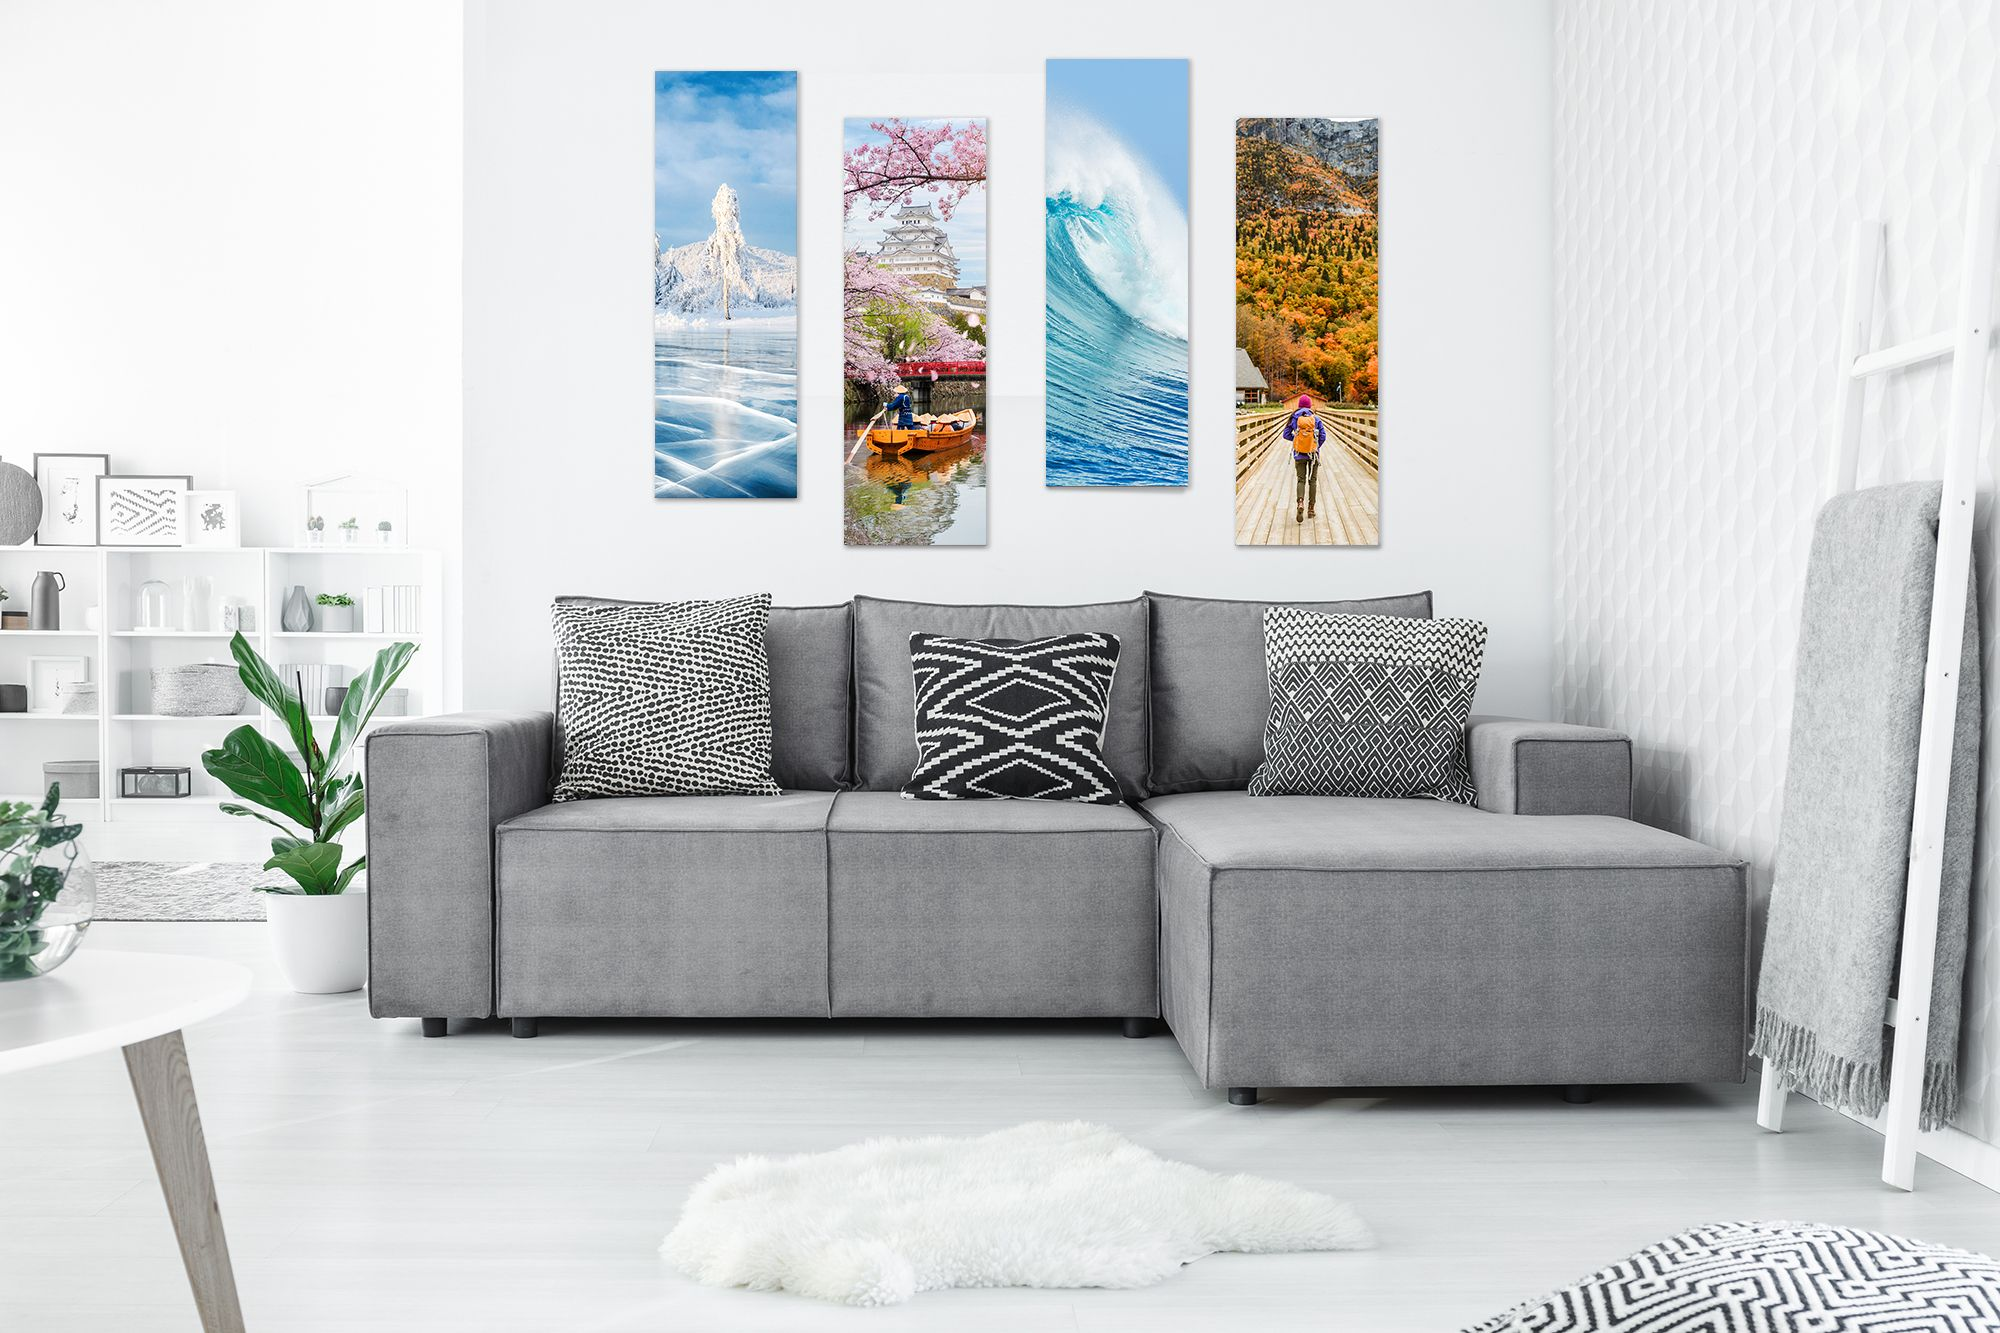 Print seasons as a creative way to display photos on your wall